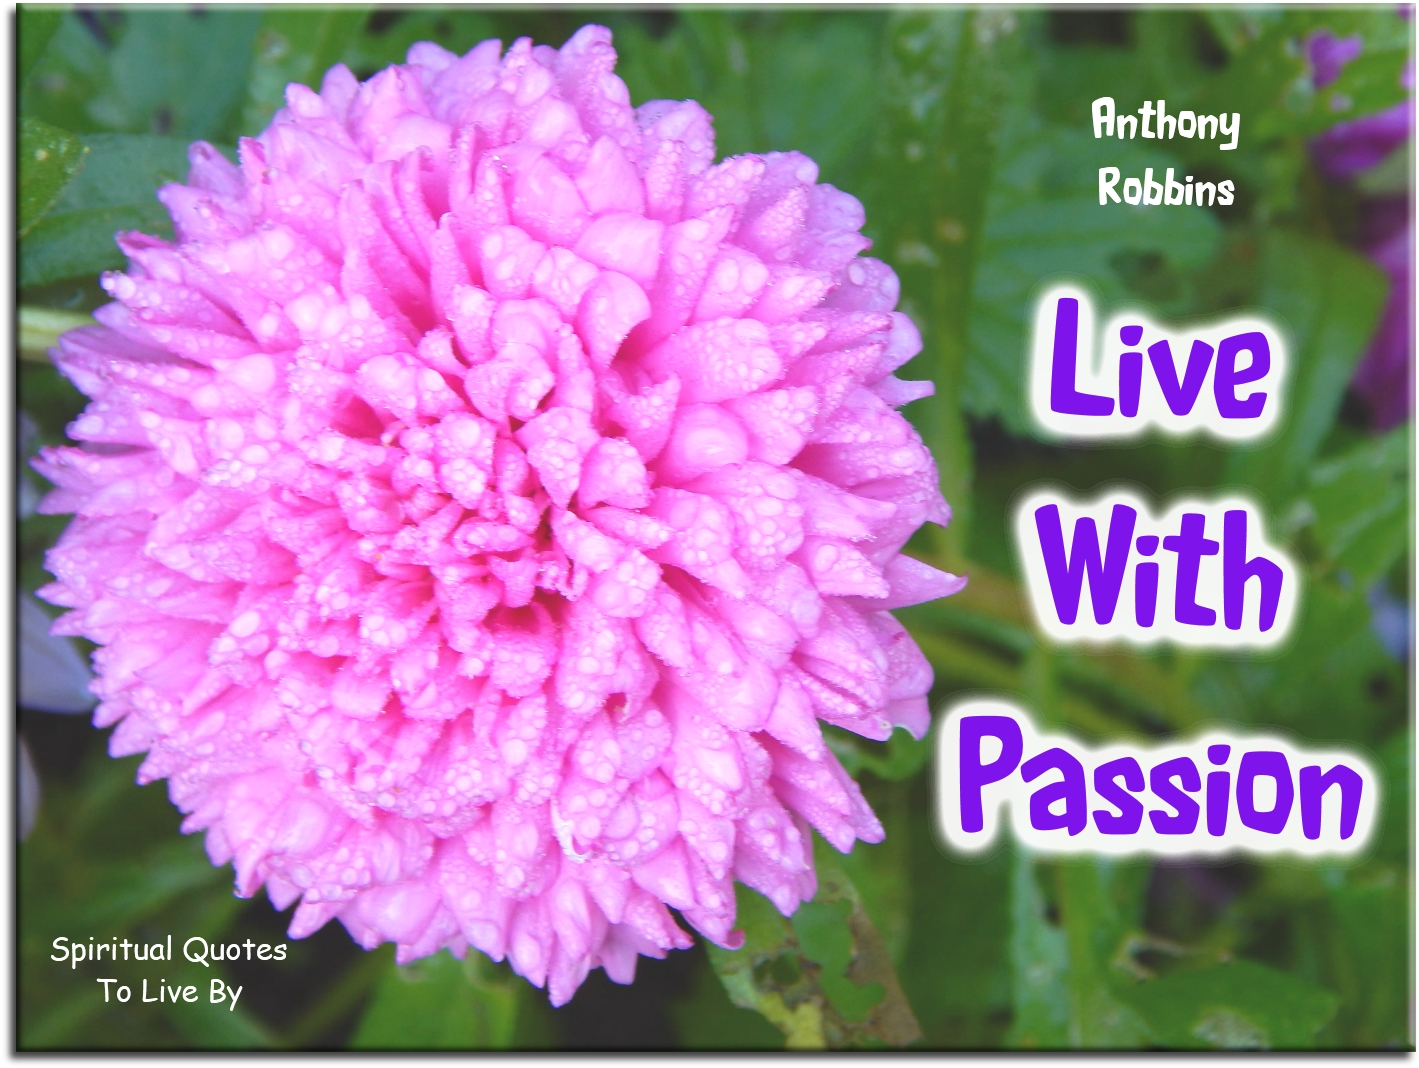 Anthony Robbins quote: Live with passion. Spiritual Quotes To Live By